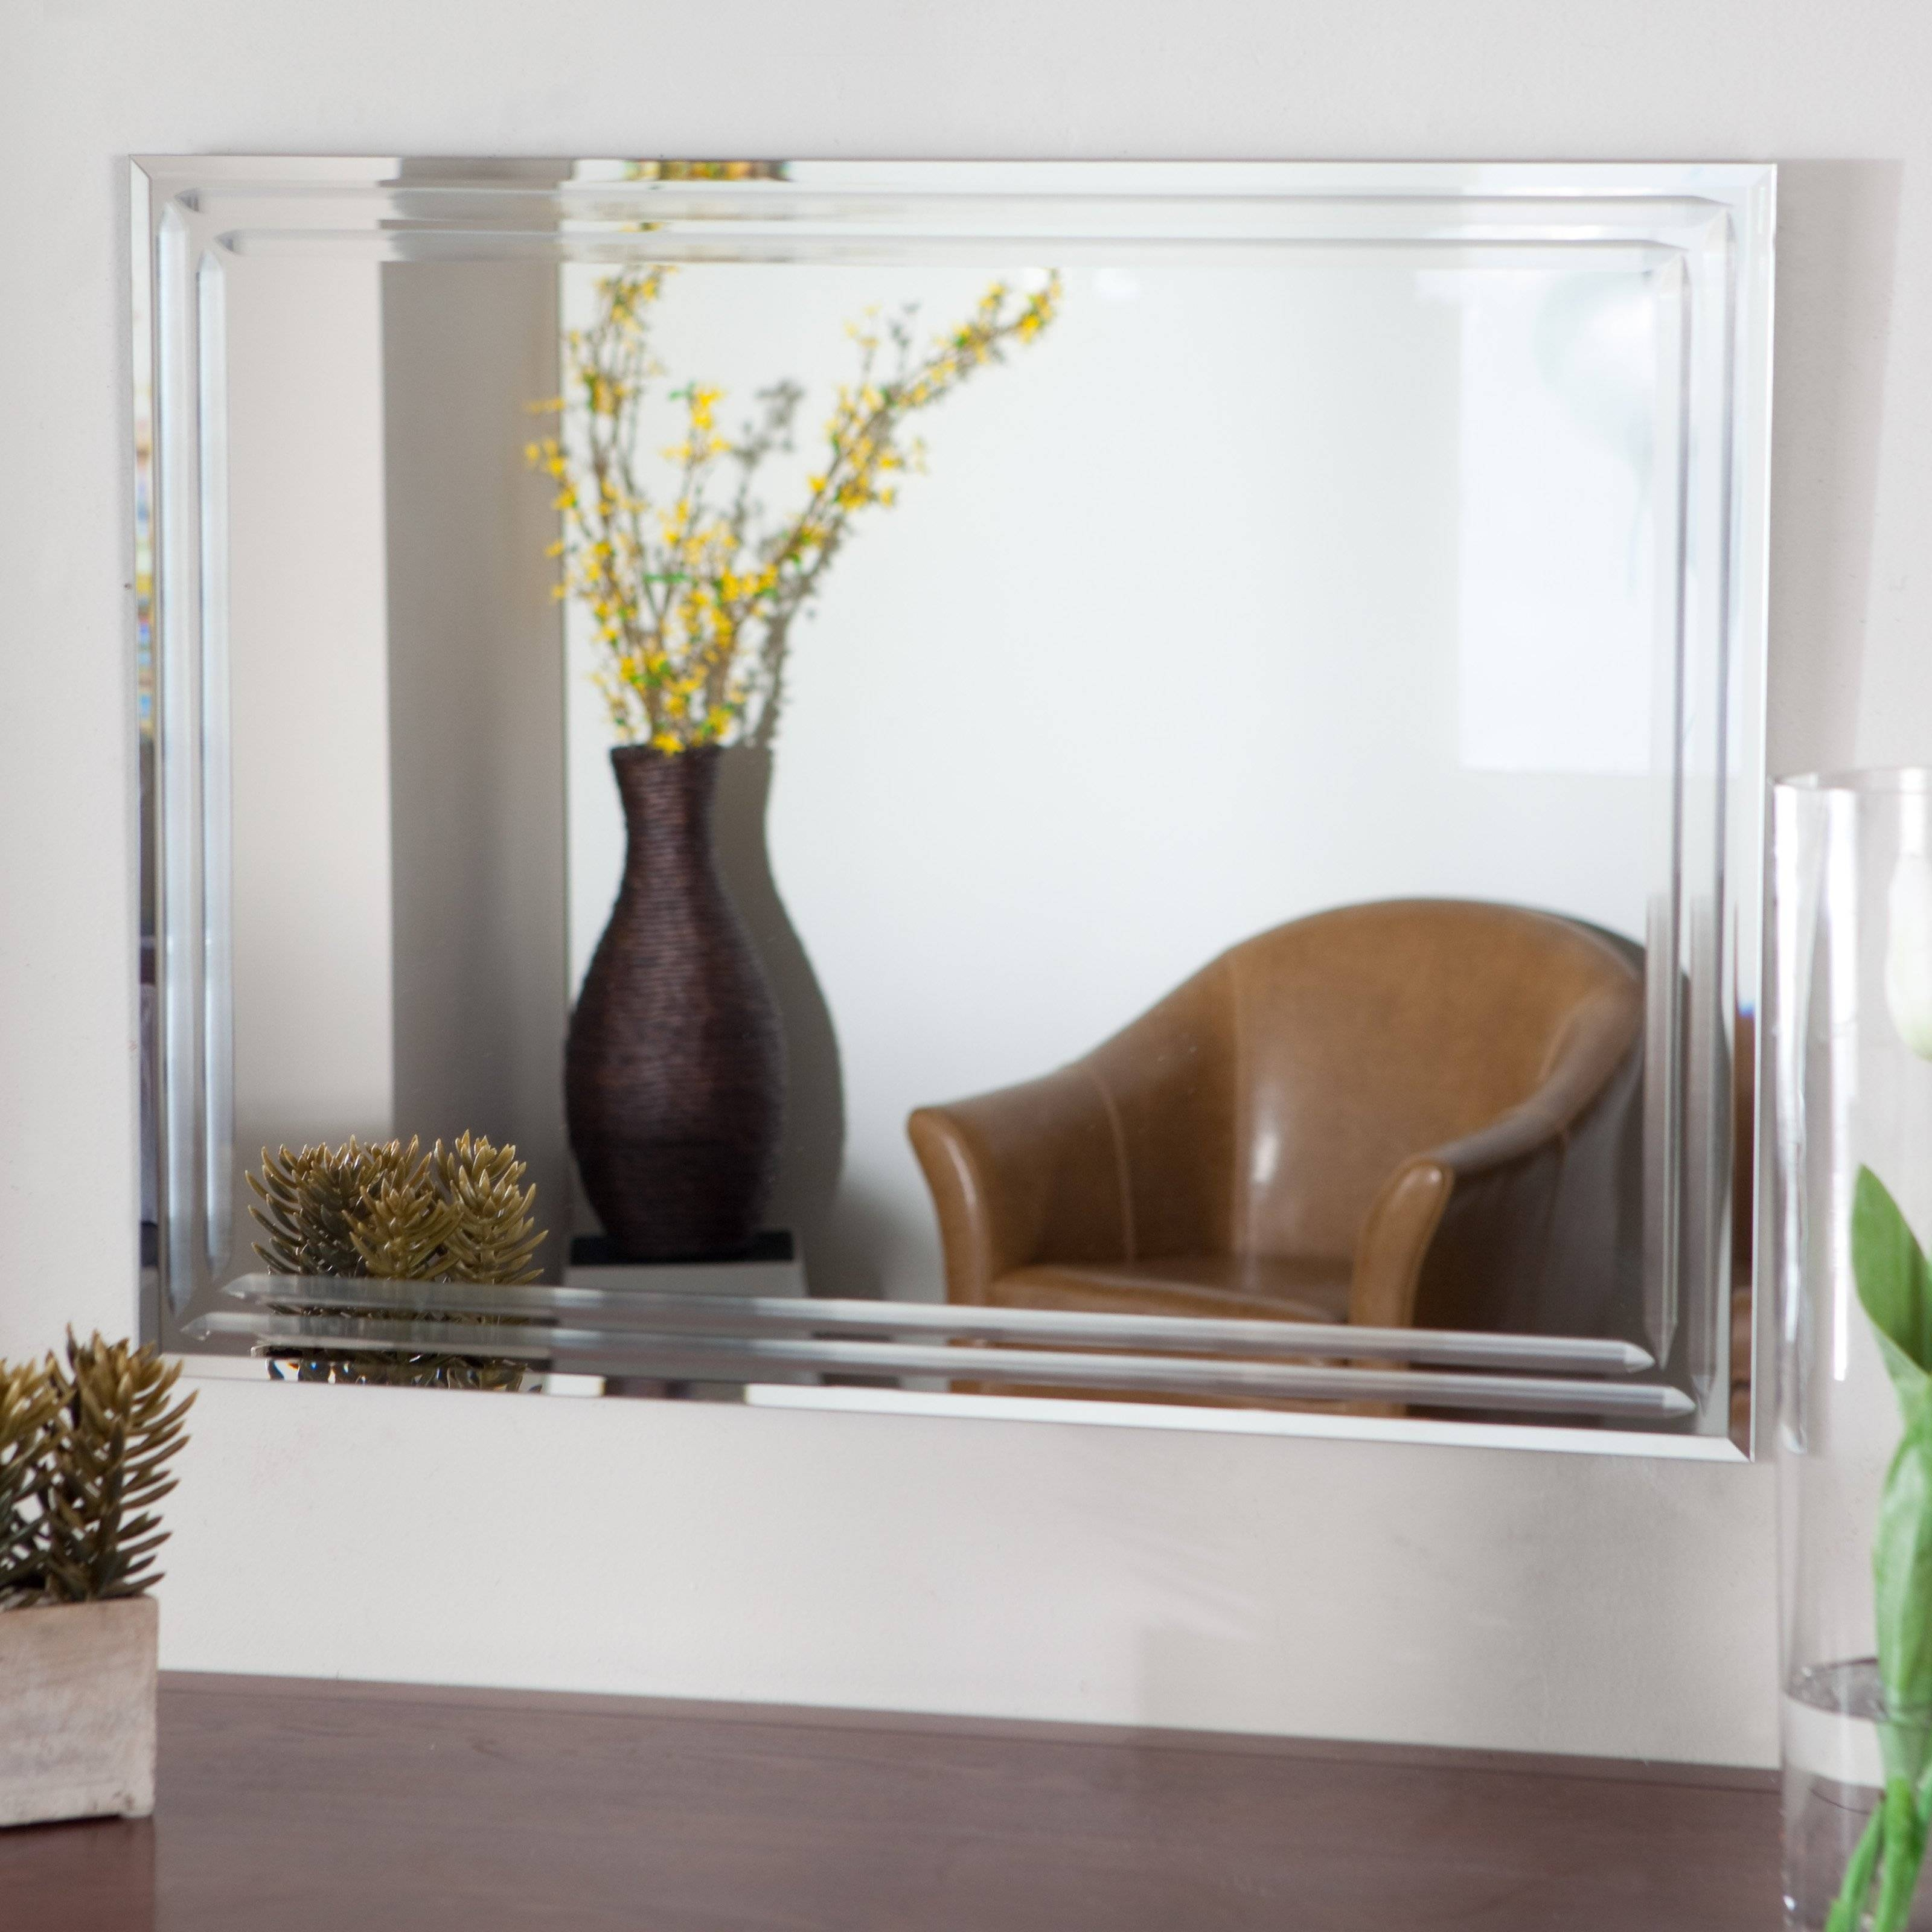 Décor Wonderland Frameless Tri Bevel Wall Mirror - 23.5W X pertaining to Large Glass Bevelled Wall Mirrors (Image 6 of 25)